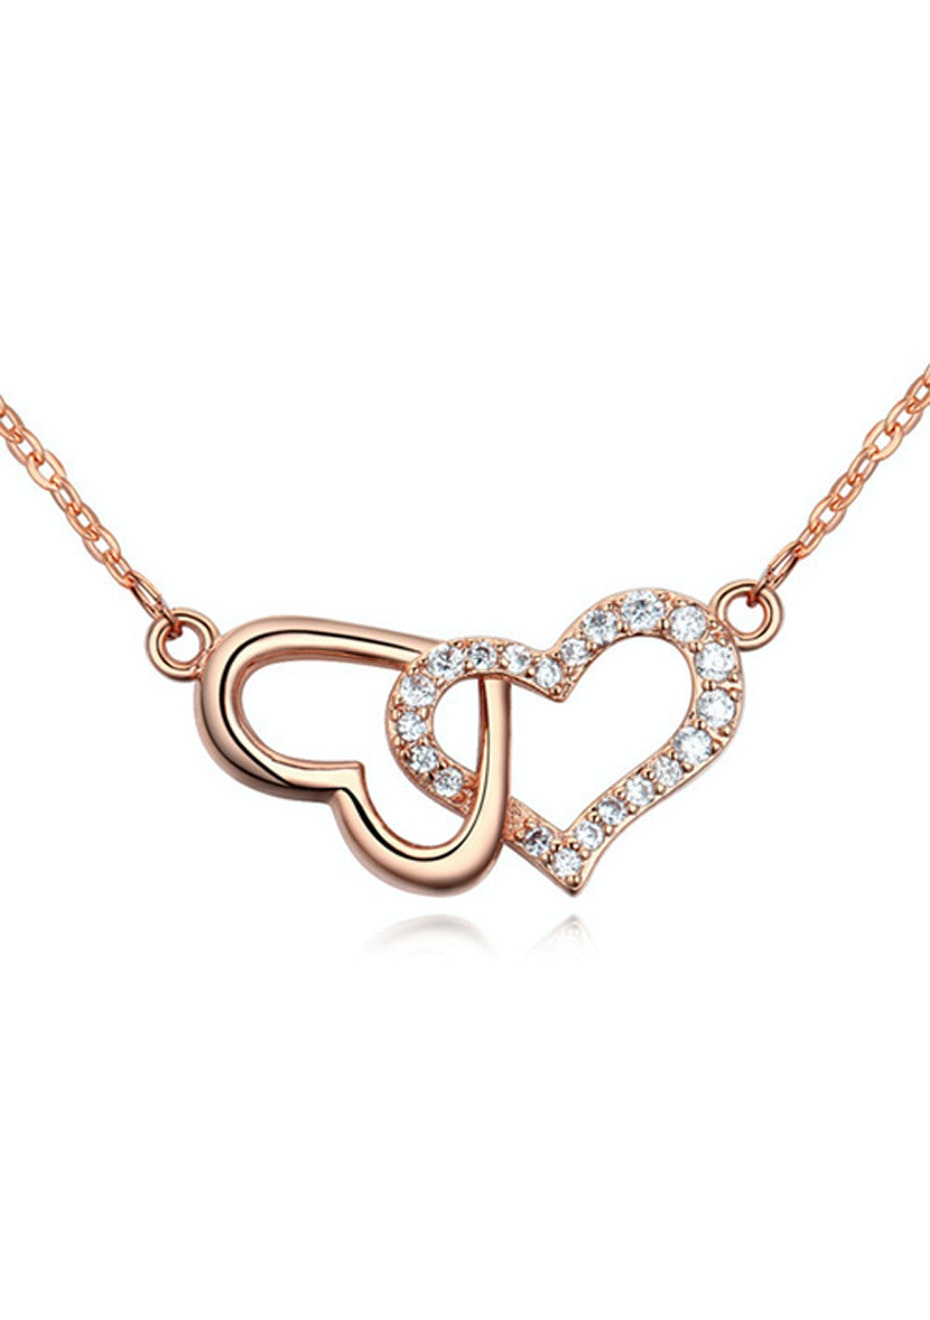 Linked Heart Pendant Necklace Embellished with Crystals from Swarovski -RG